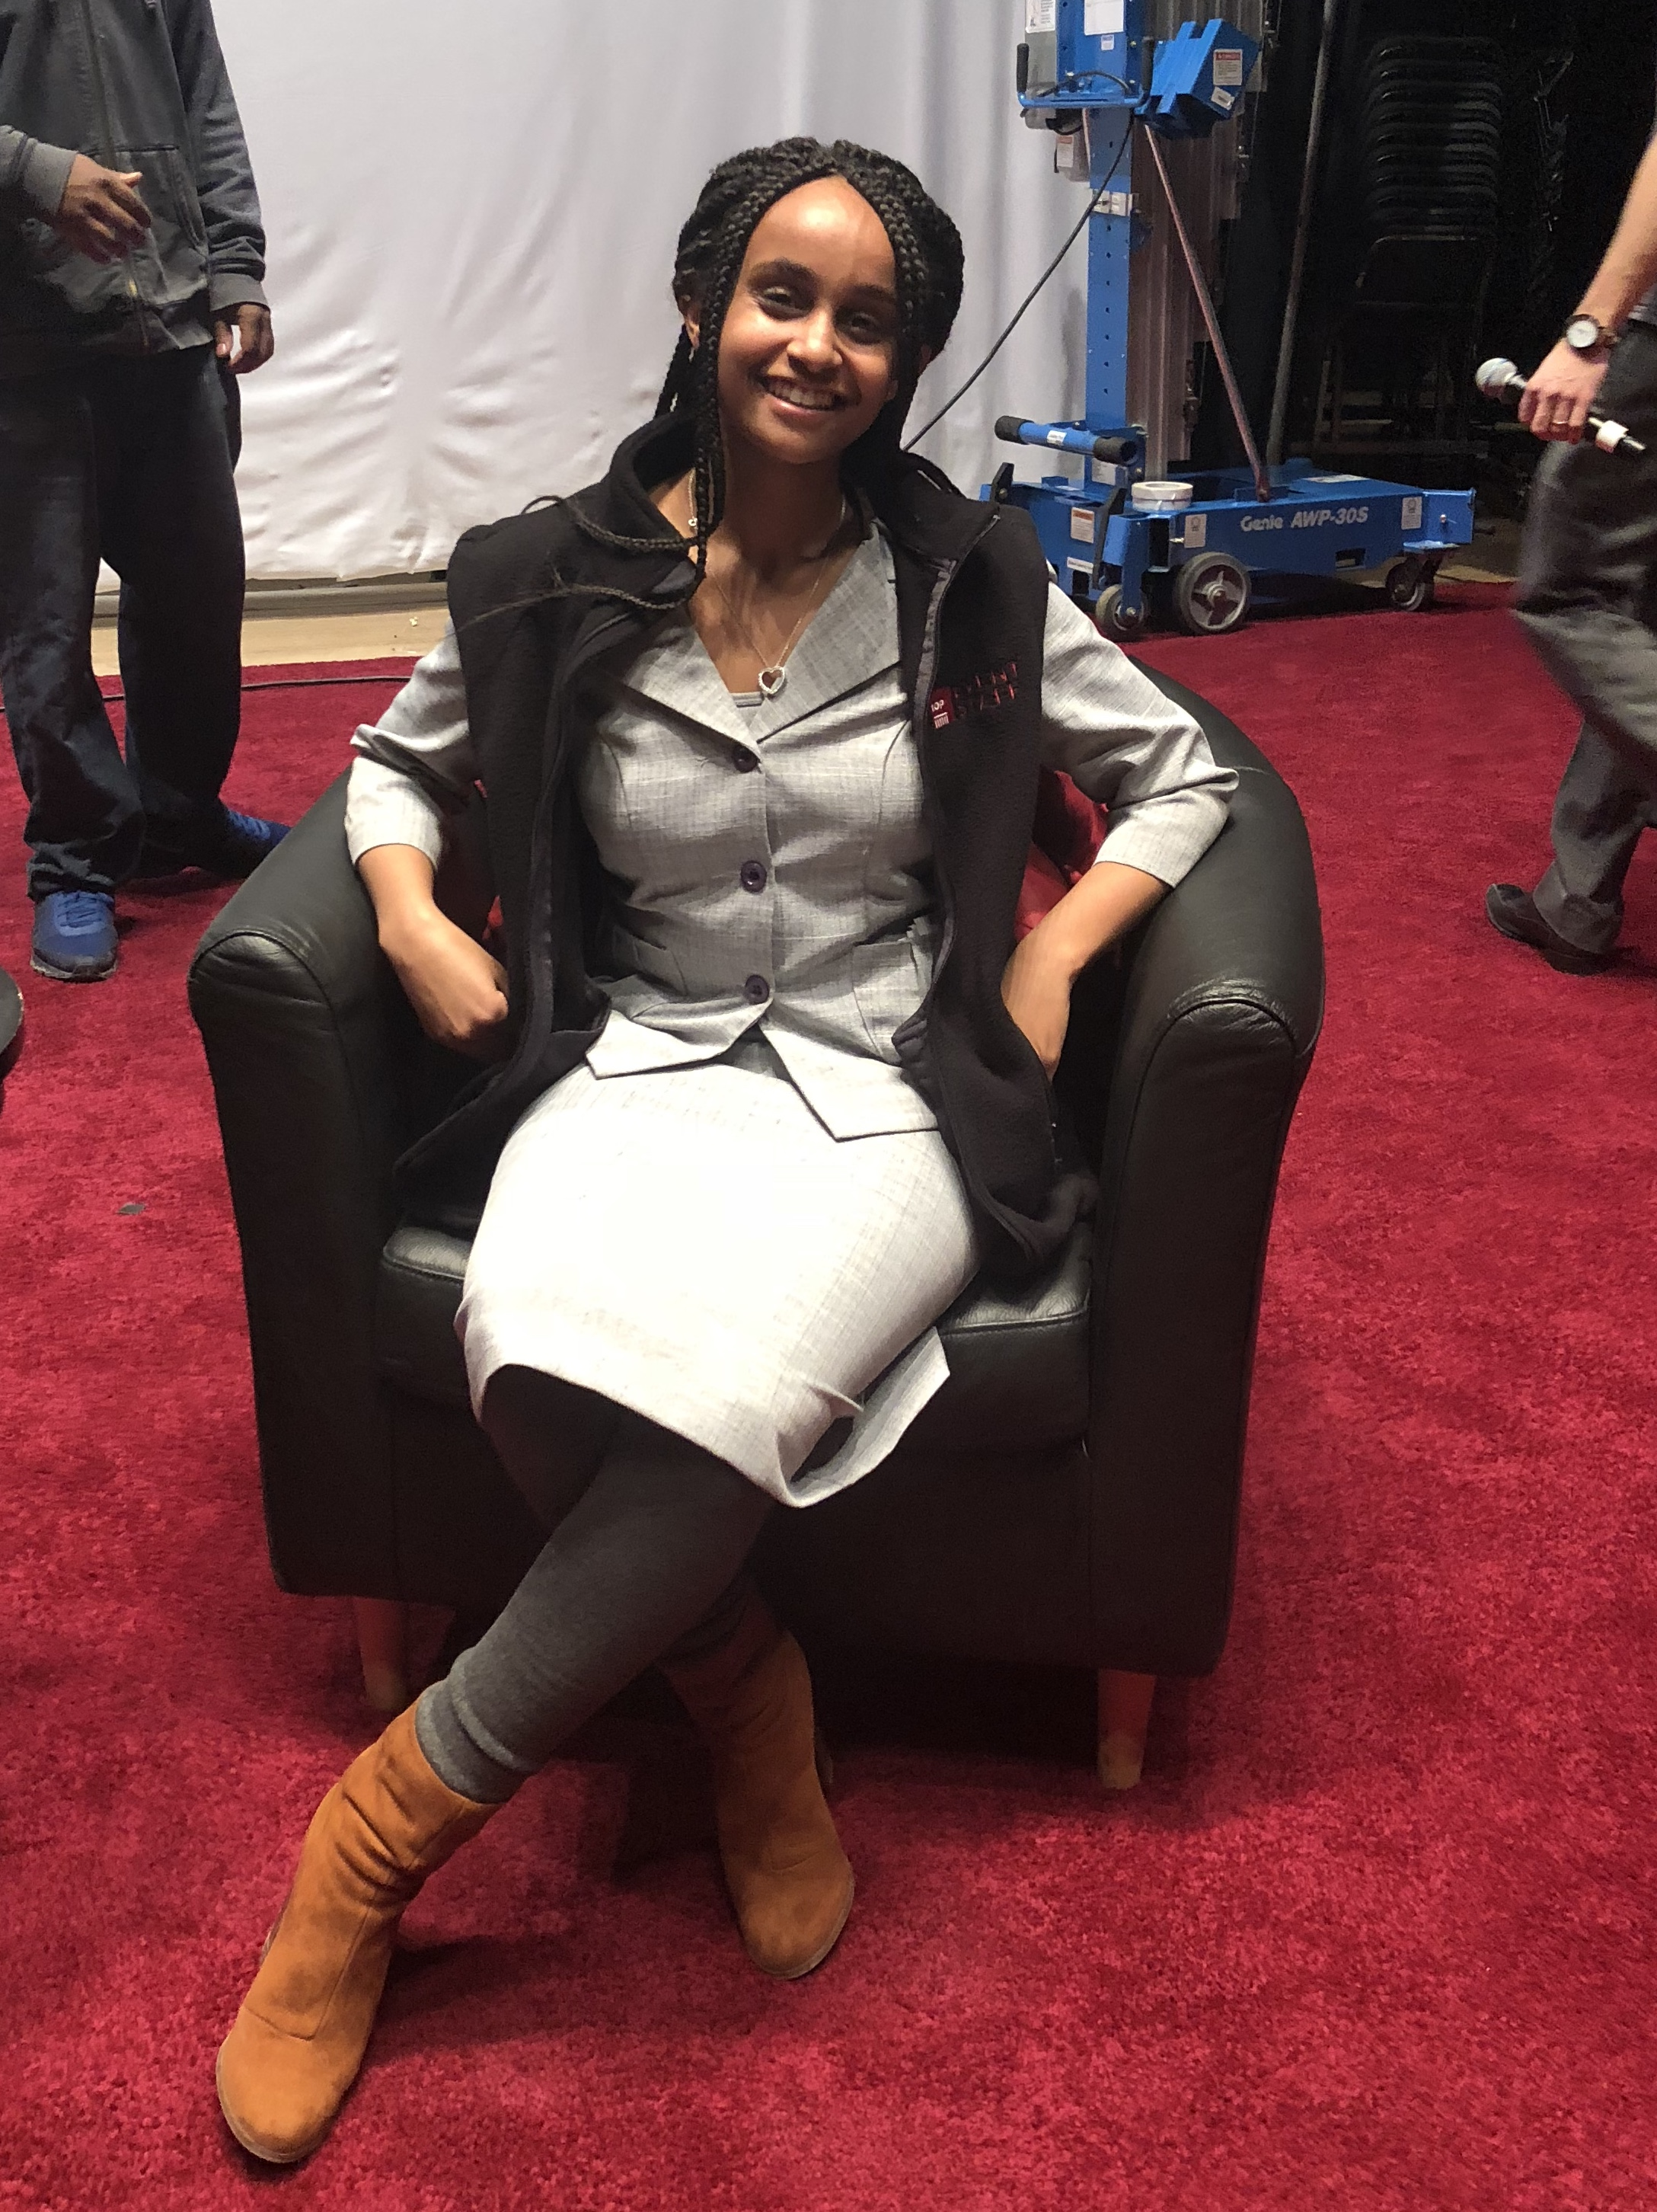 Me sitting in the same chair Trudeau sat in!